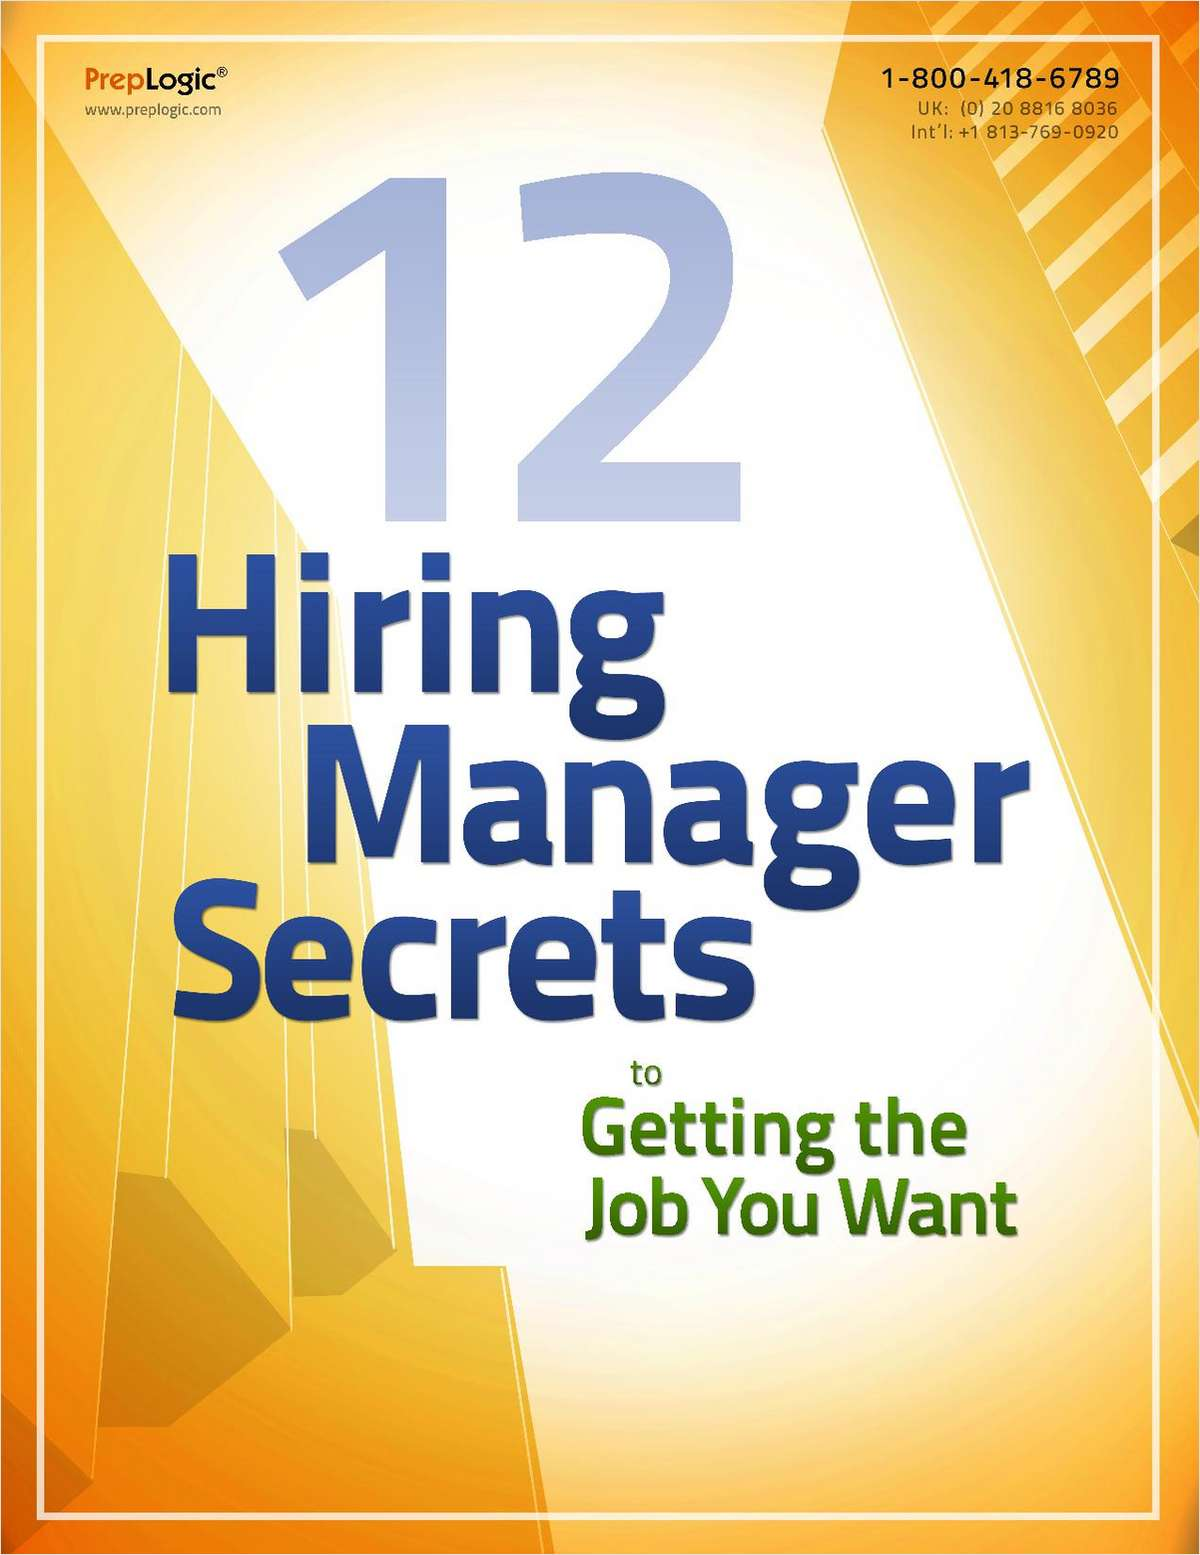 12 Hiring Manager Secrets to Getting the IT Job You Want